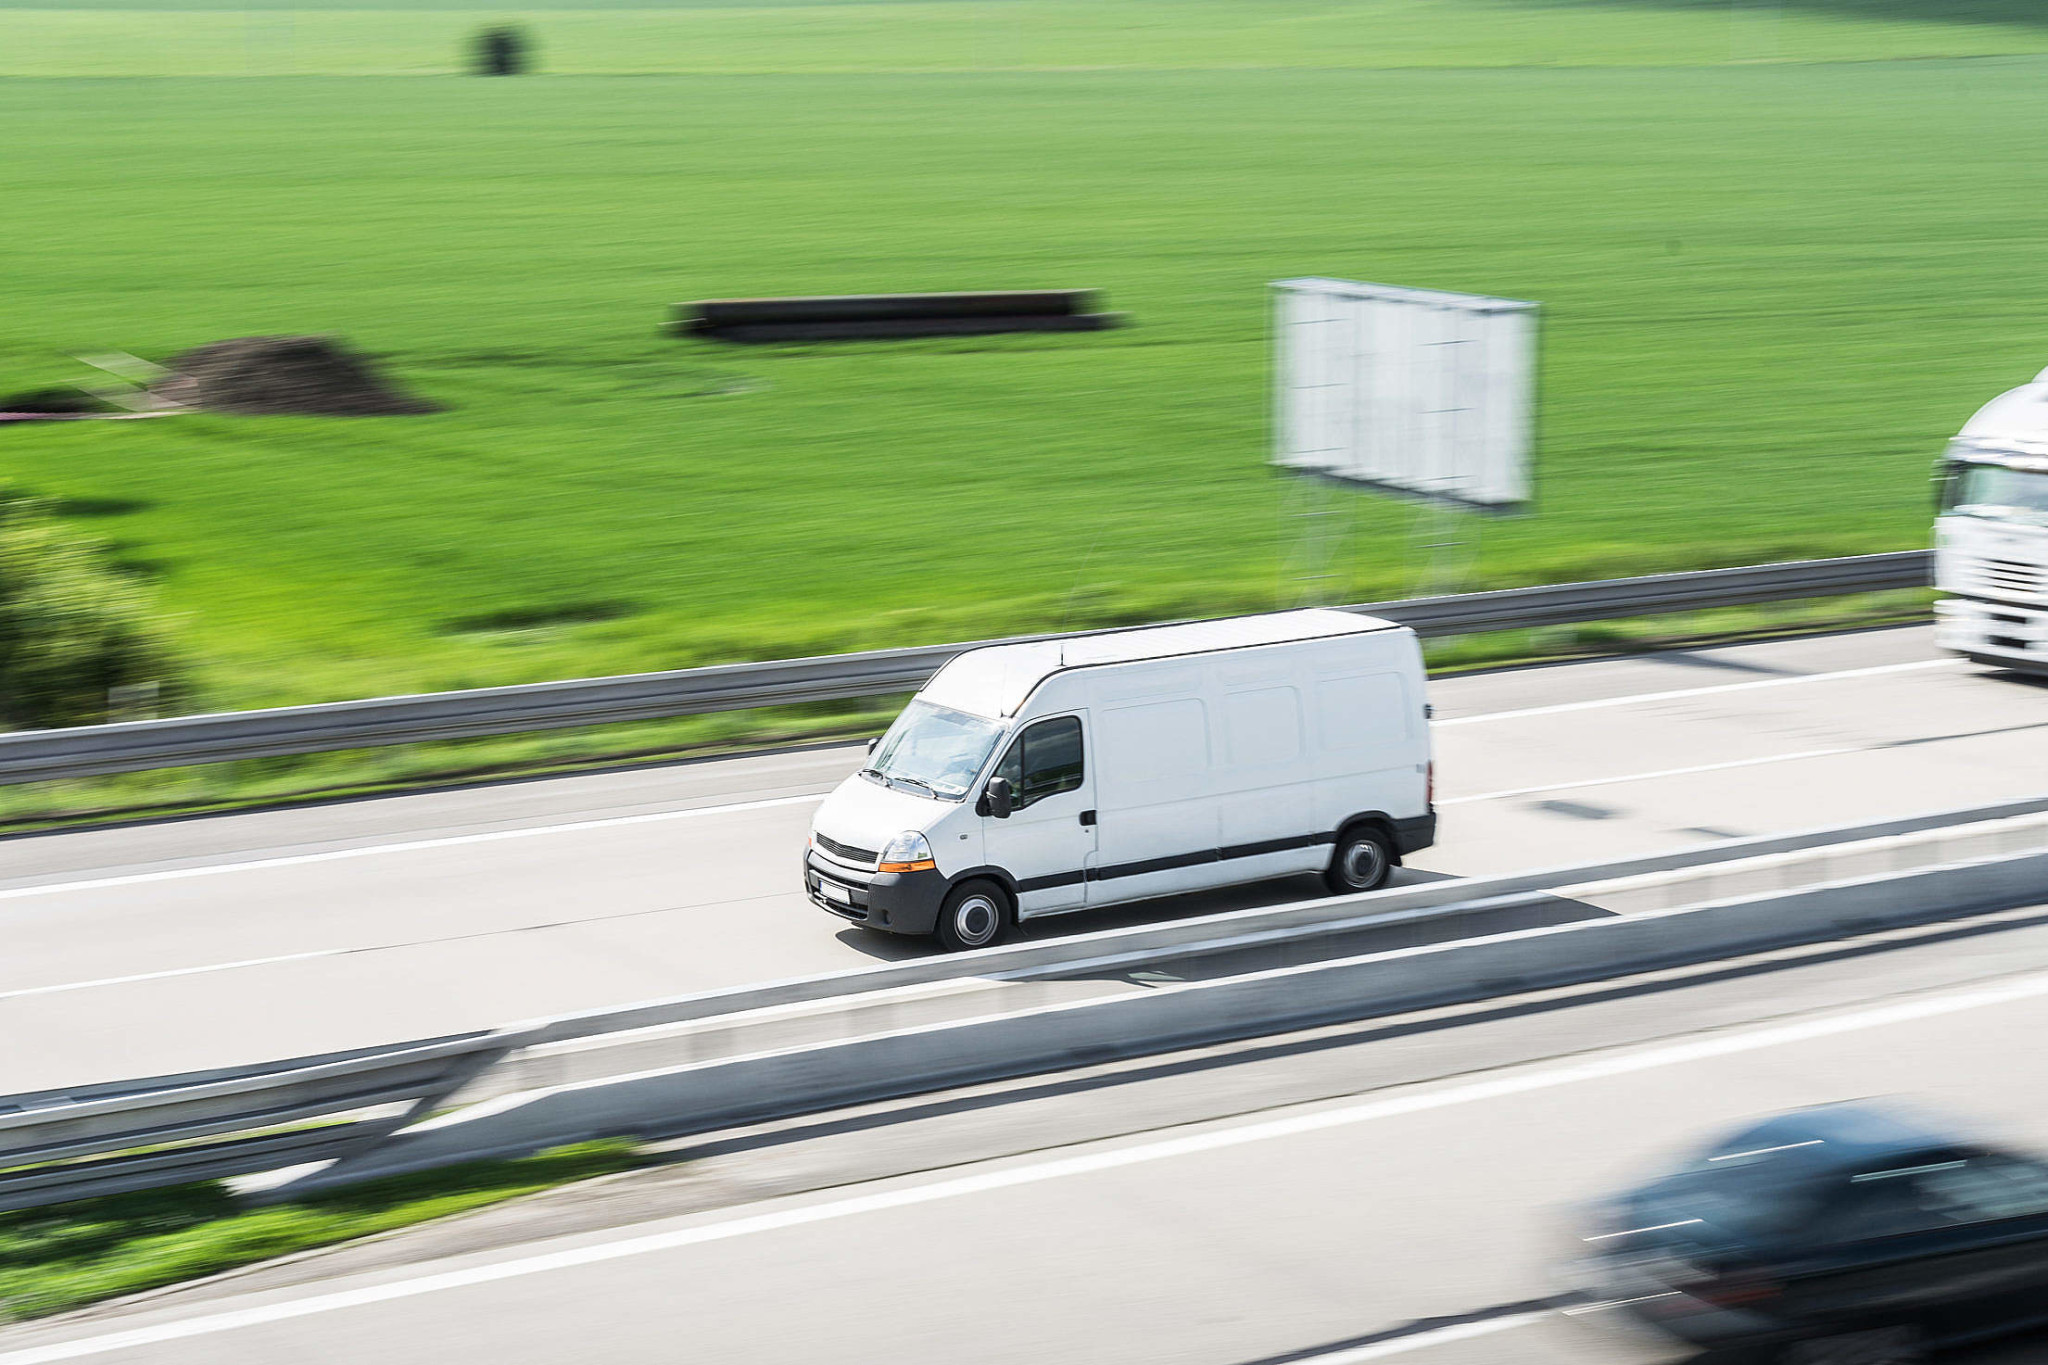 white-delivery-van-in-motion-driving-on-highway_free_stock_photos_picjumbo_DSC04216-2210x1473.jpg